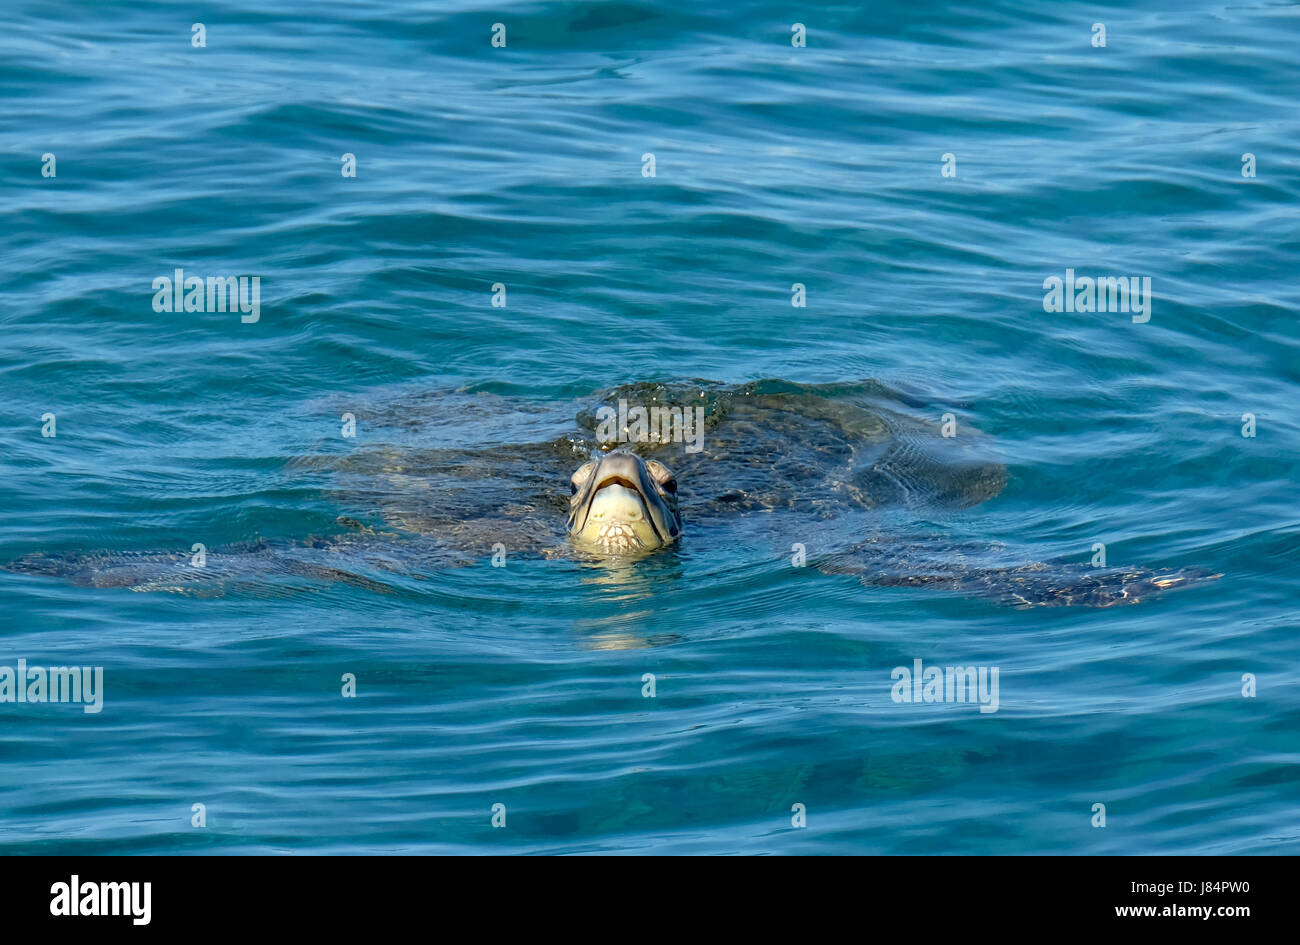 A Green Sea Turtle swimming of the coast of Maui. Hawaii - Stock Image